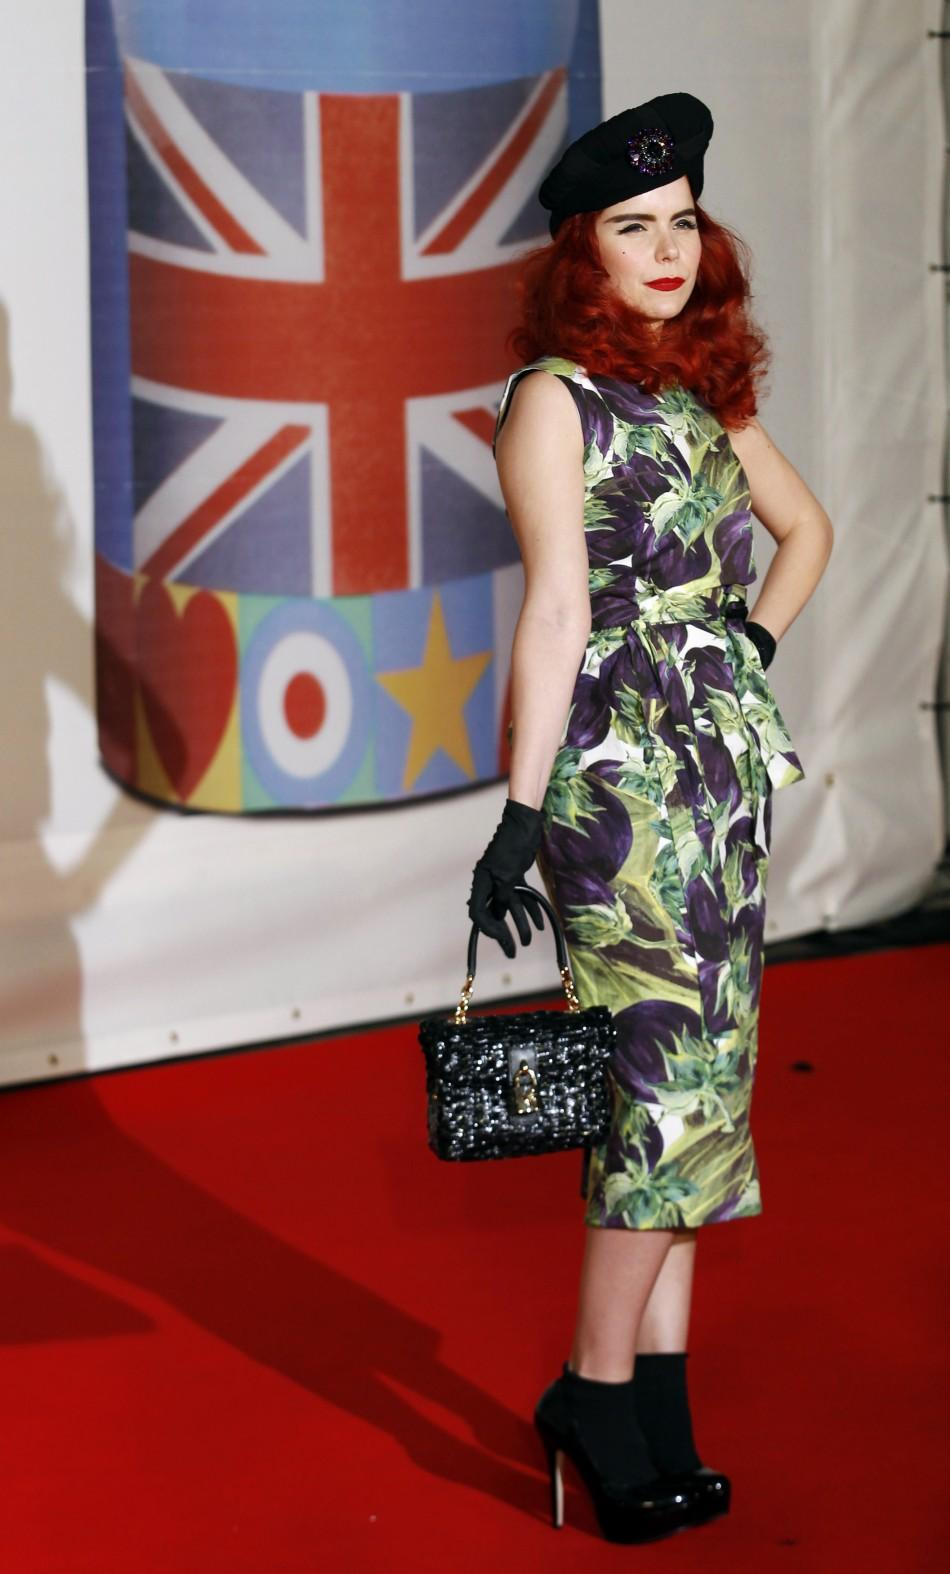 Paloma Faith arrives for the BRIT Music Awards at the O2 Arena in London February 21, 2012.